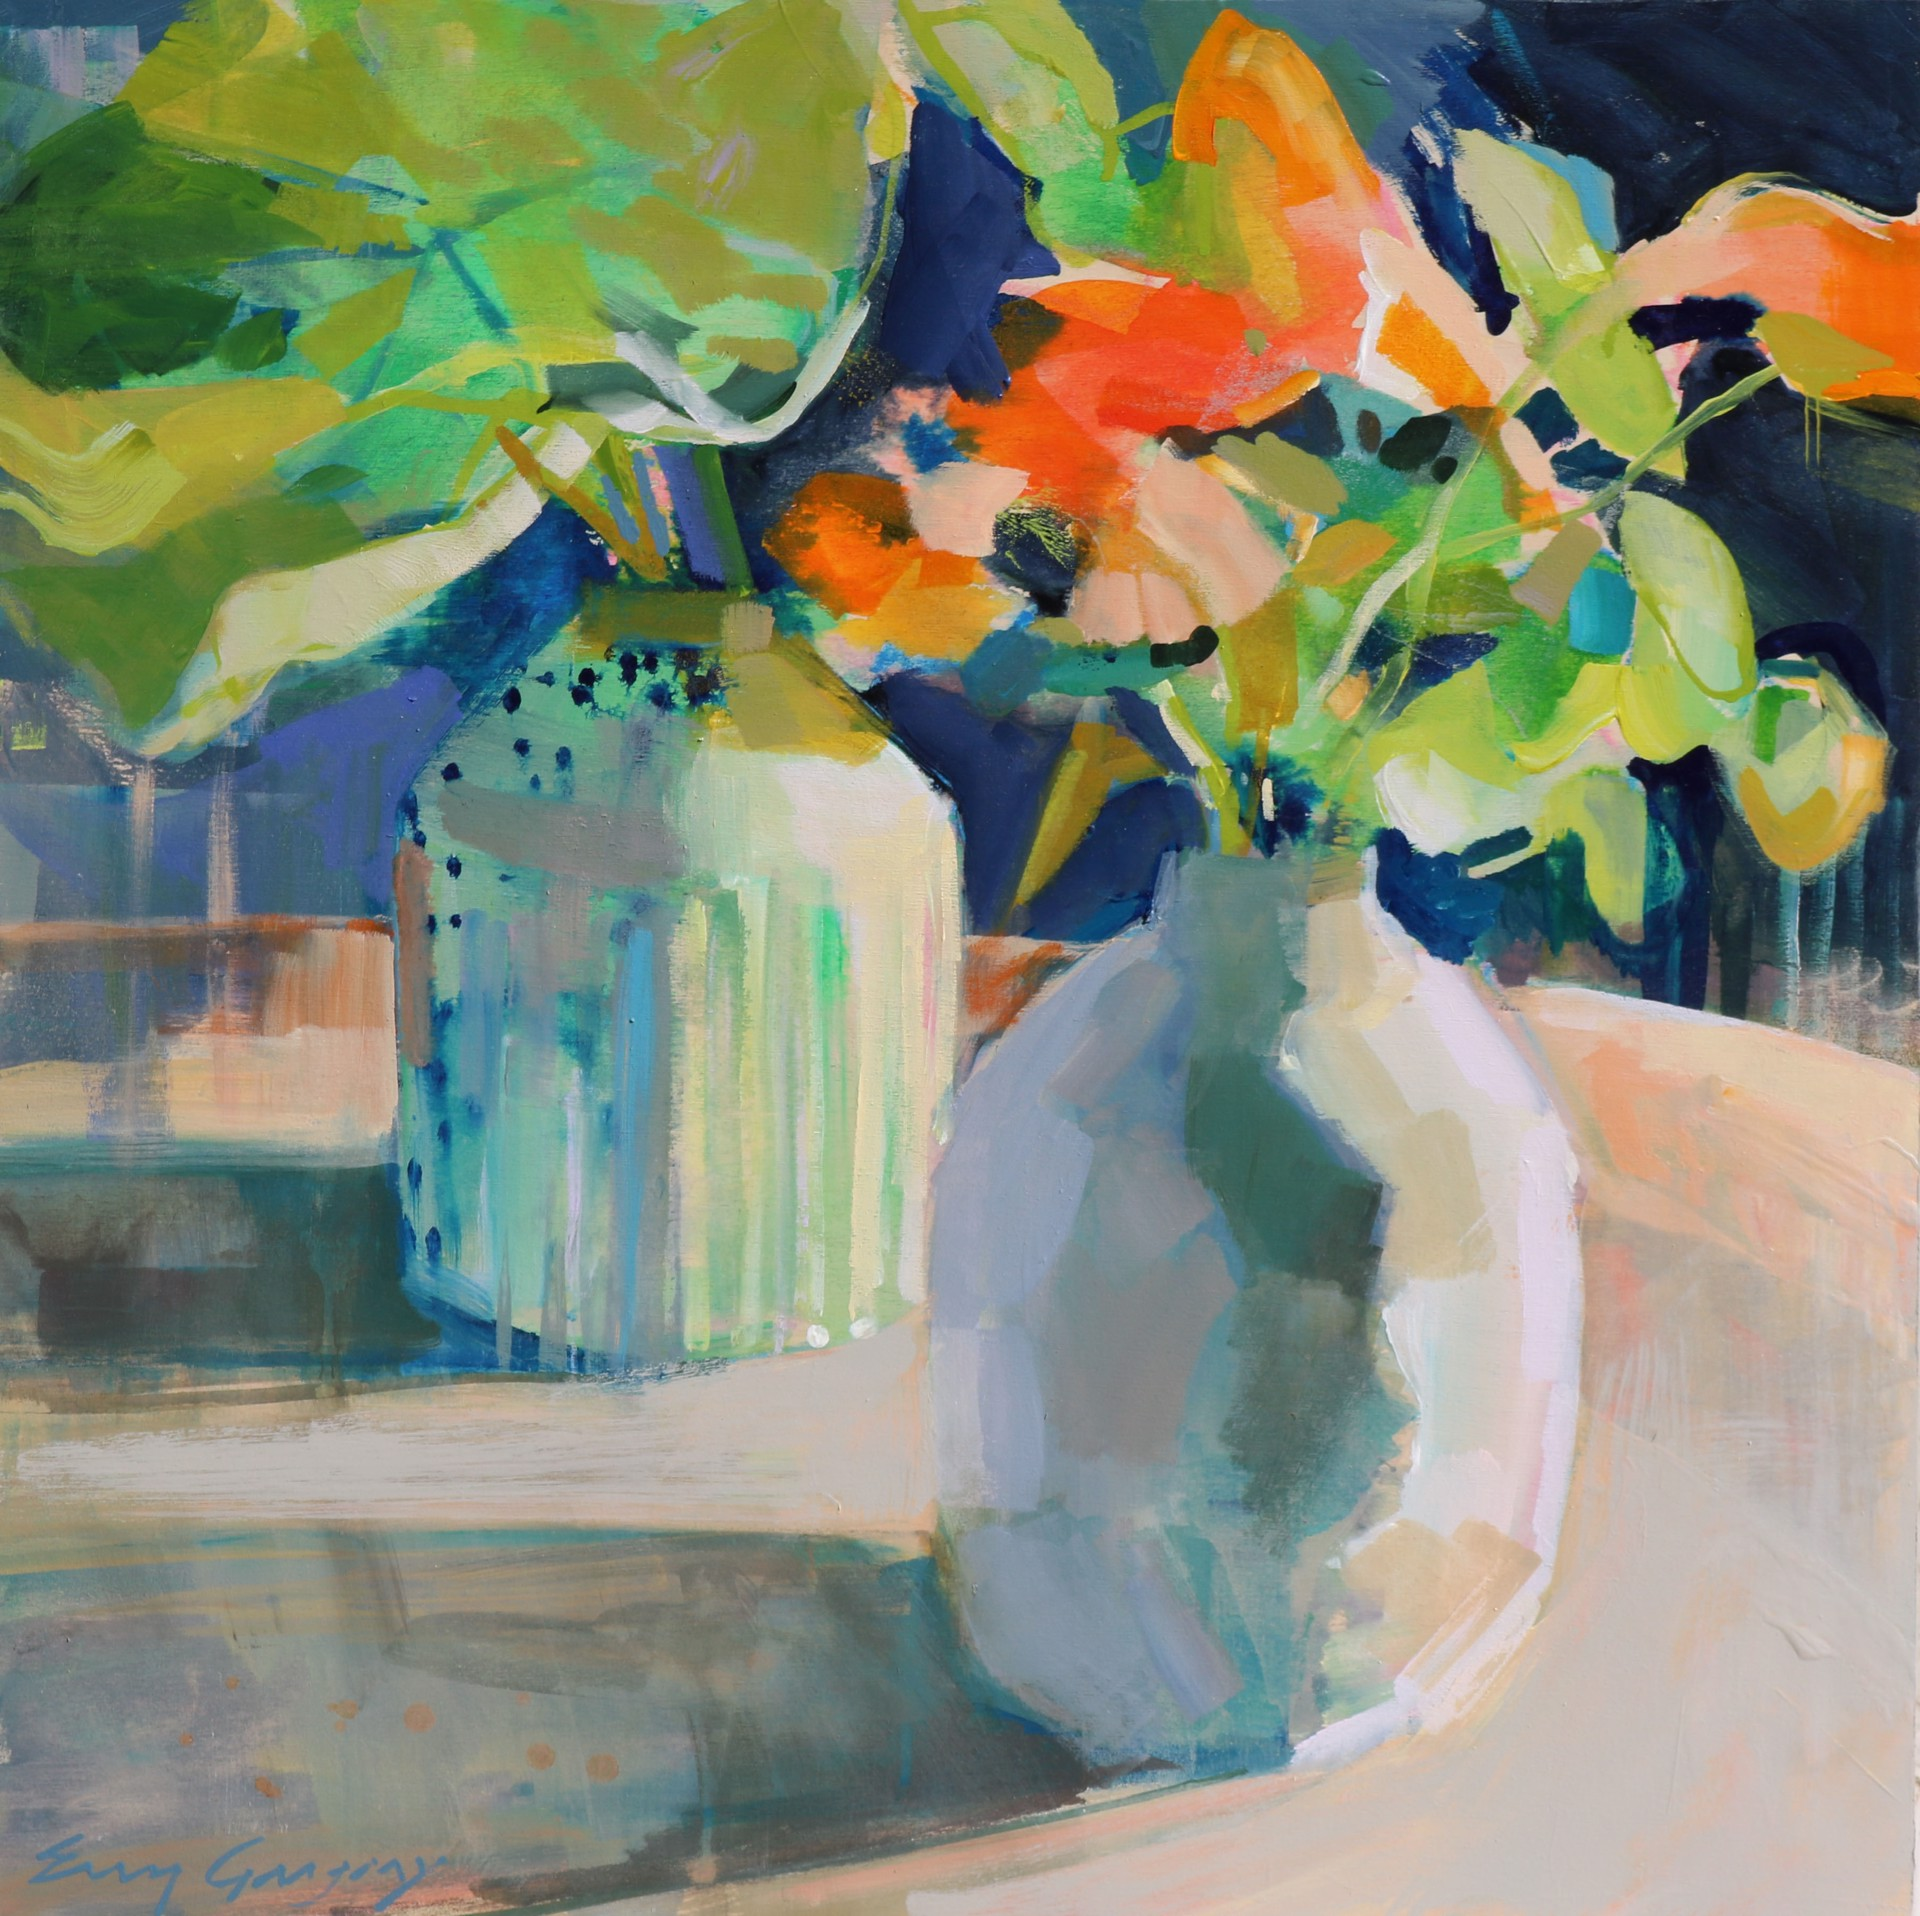 Nasturtium Obsession 1 by Erin Gregory